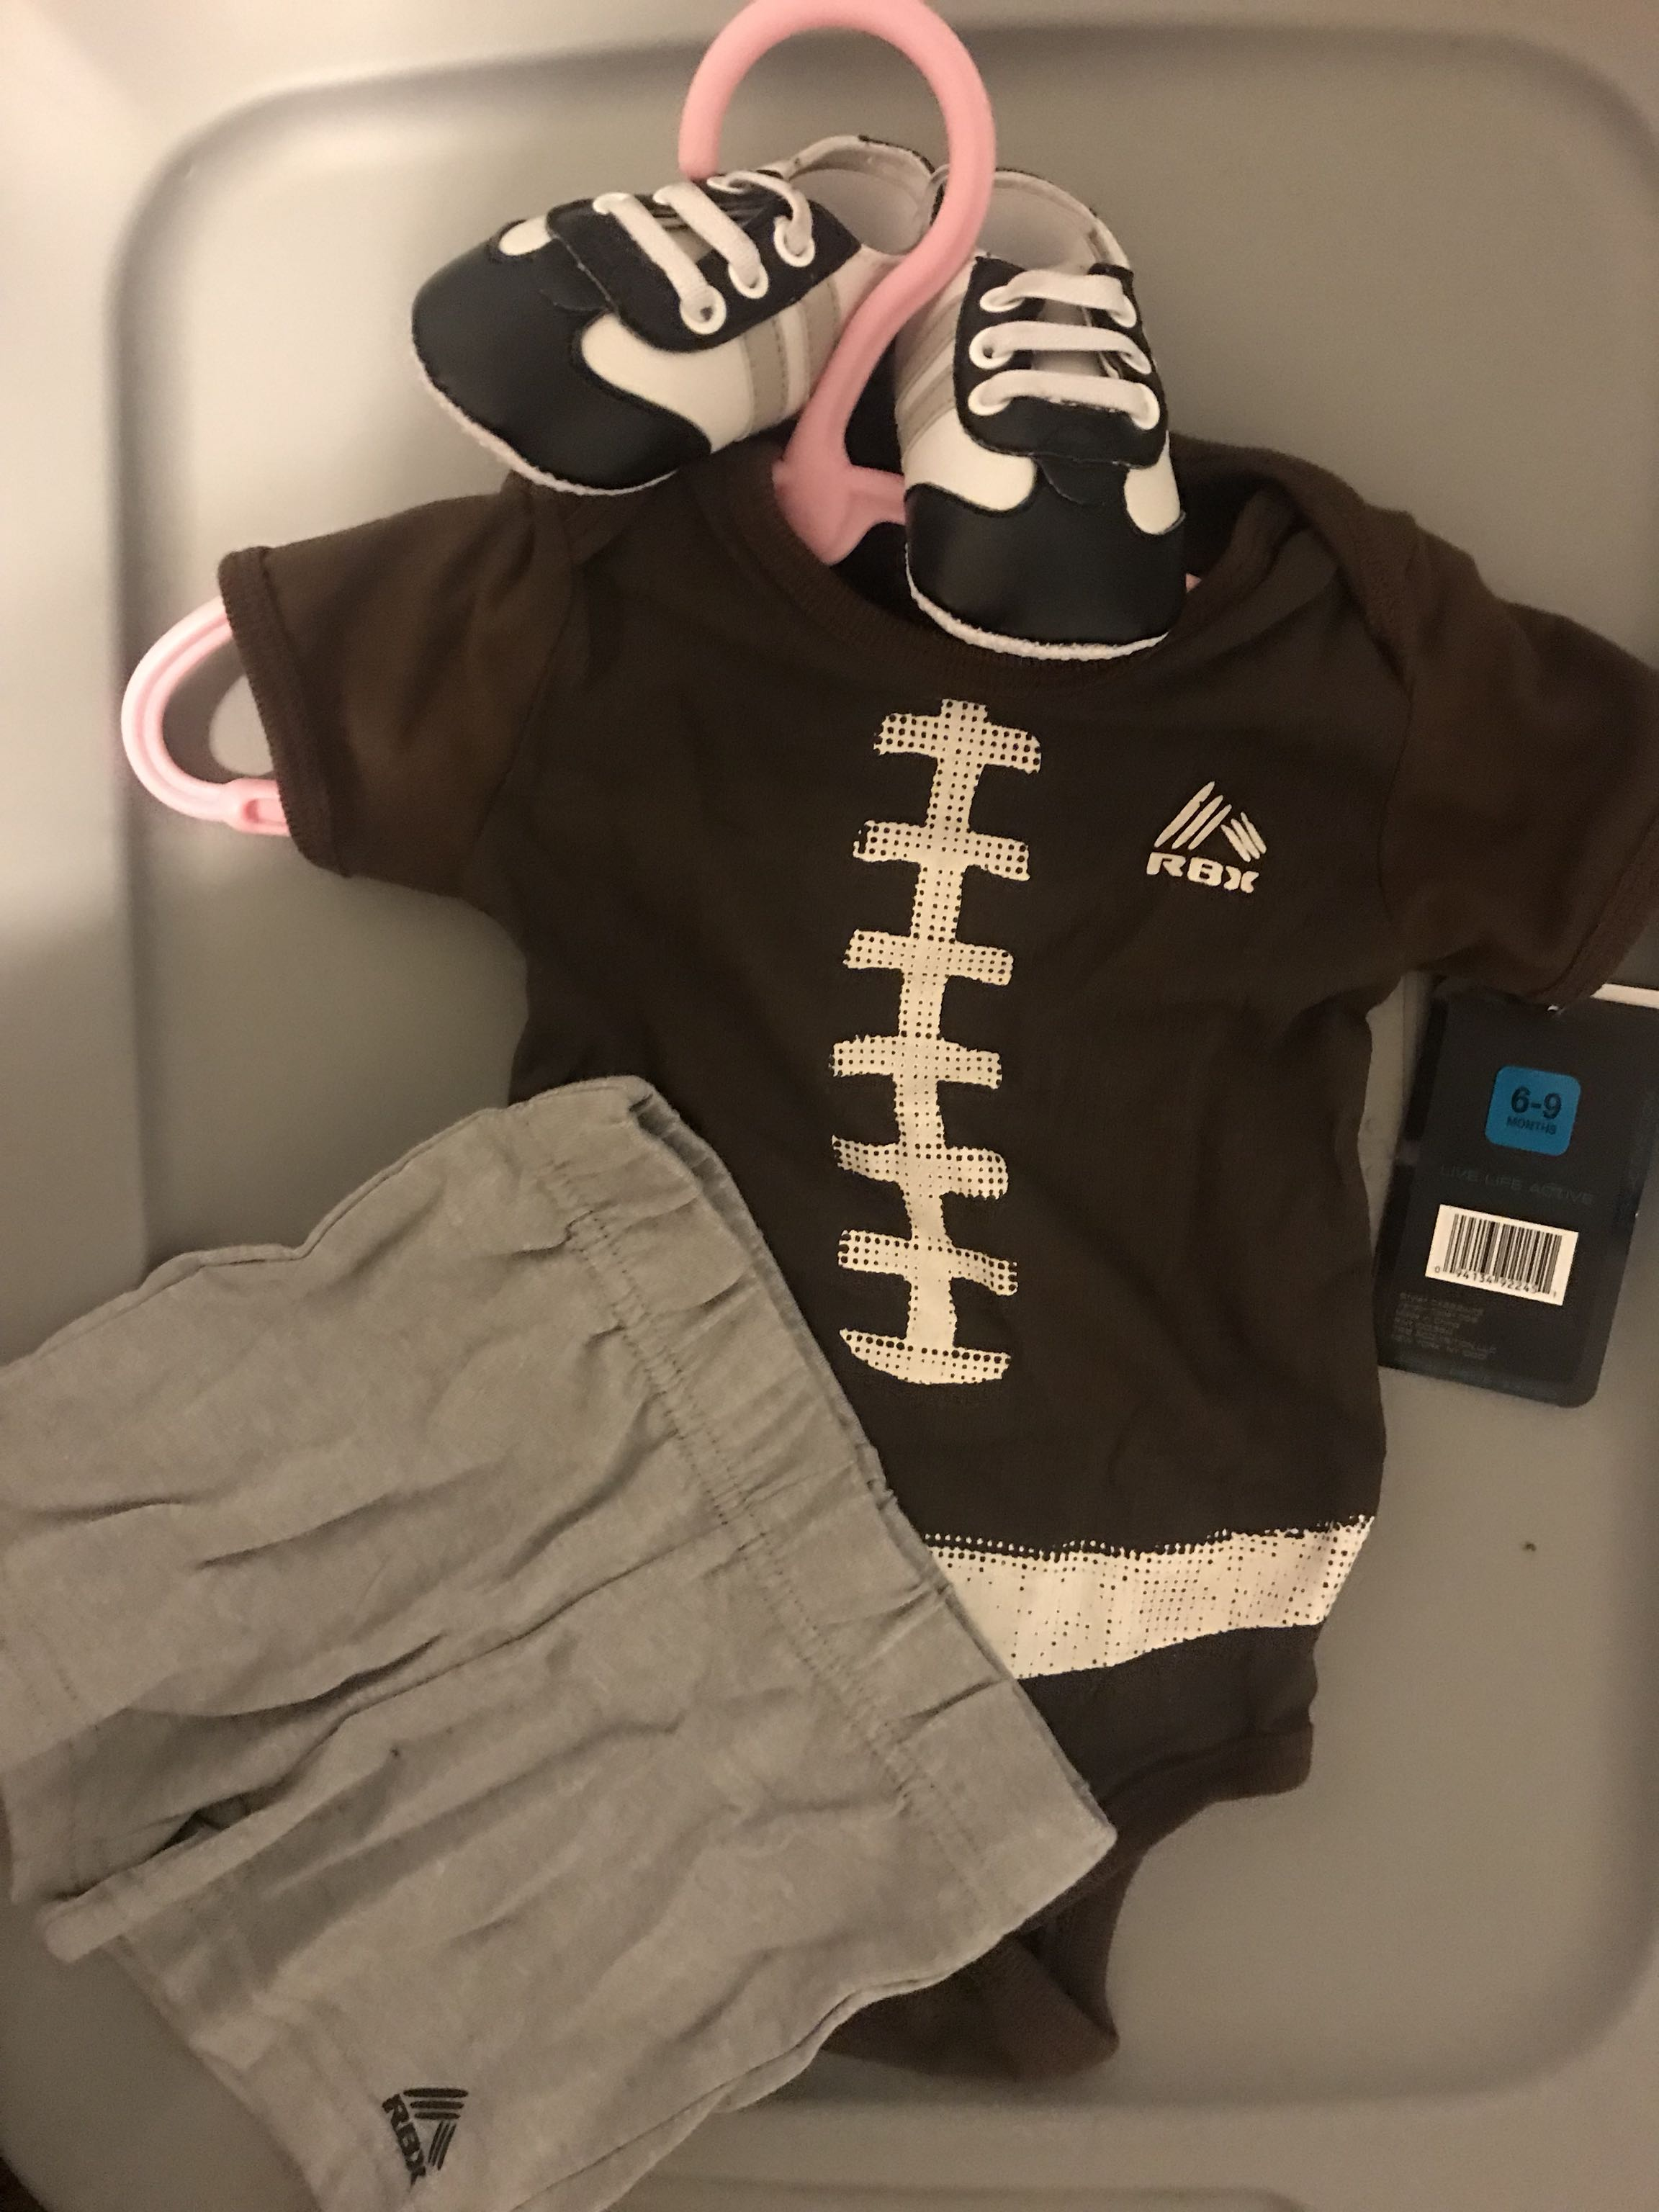 Football outfit with shoes